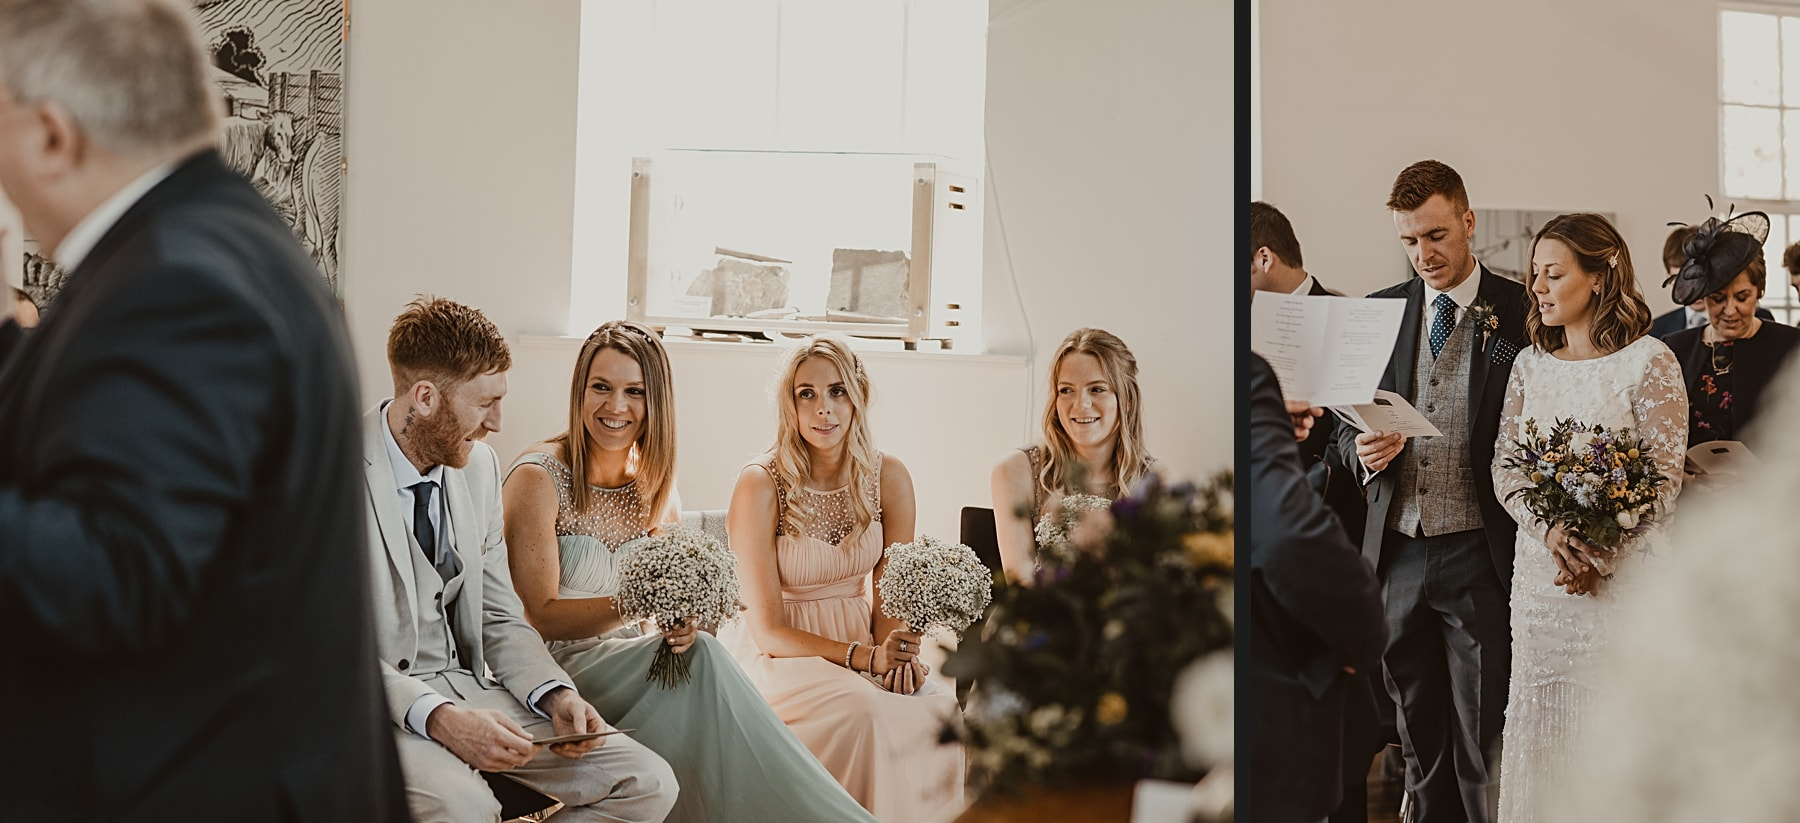 guests during ceremony